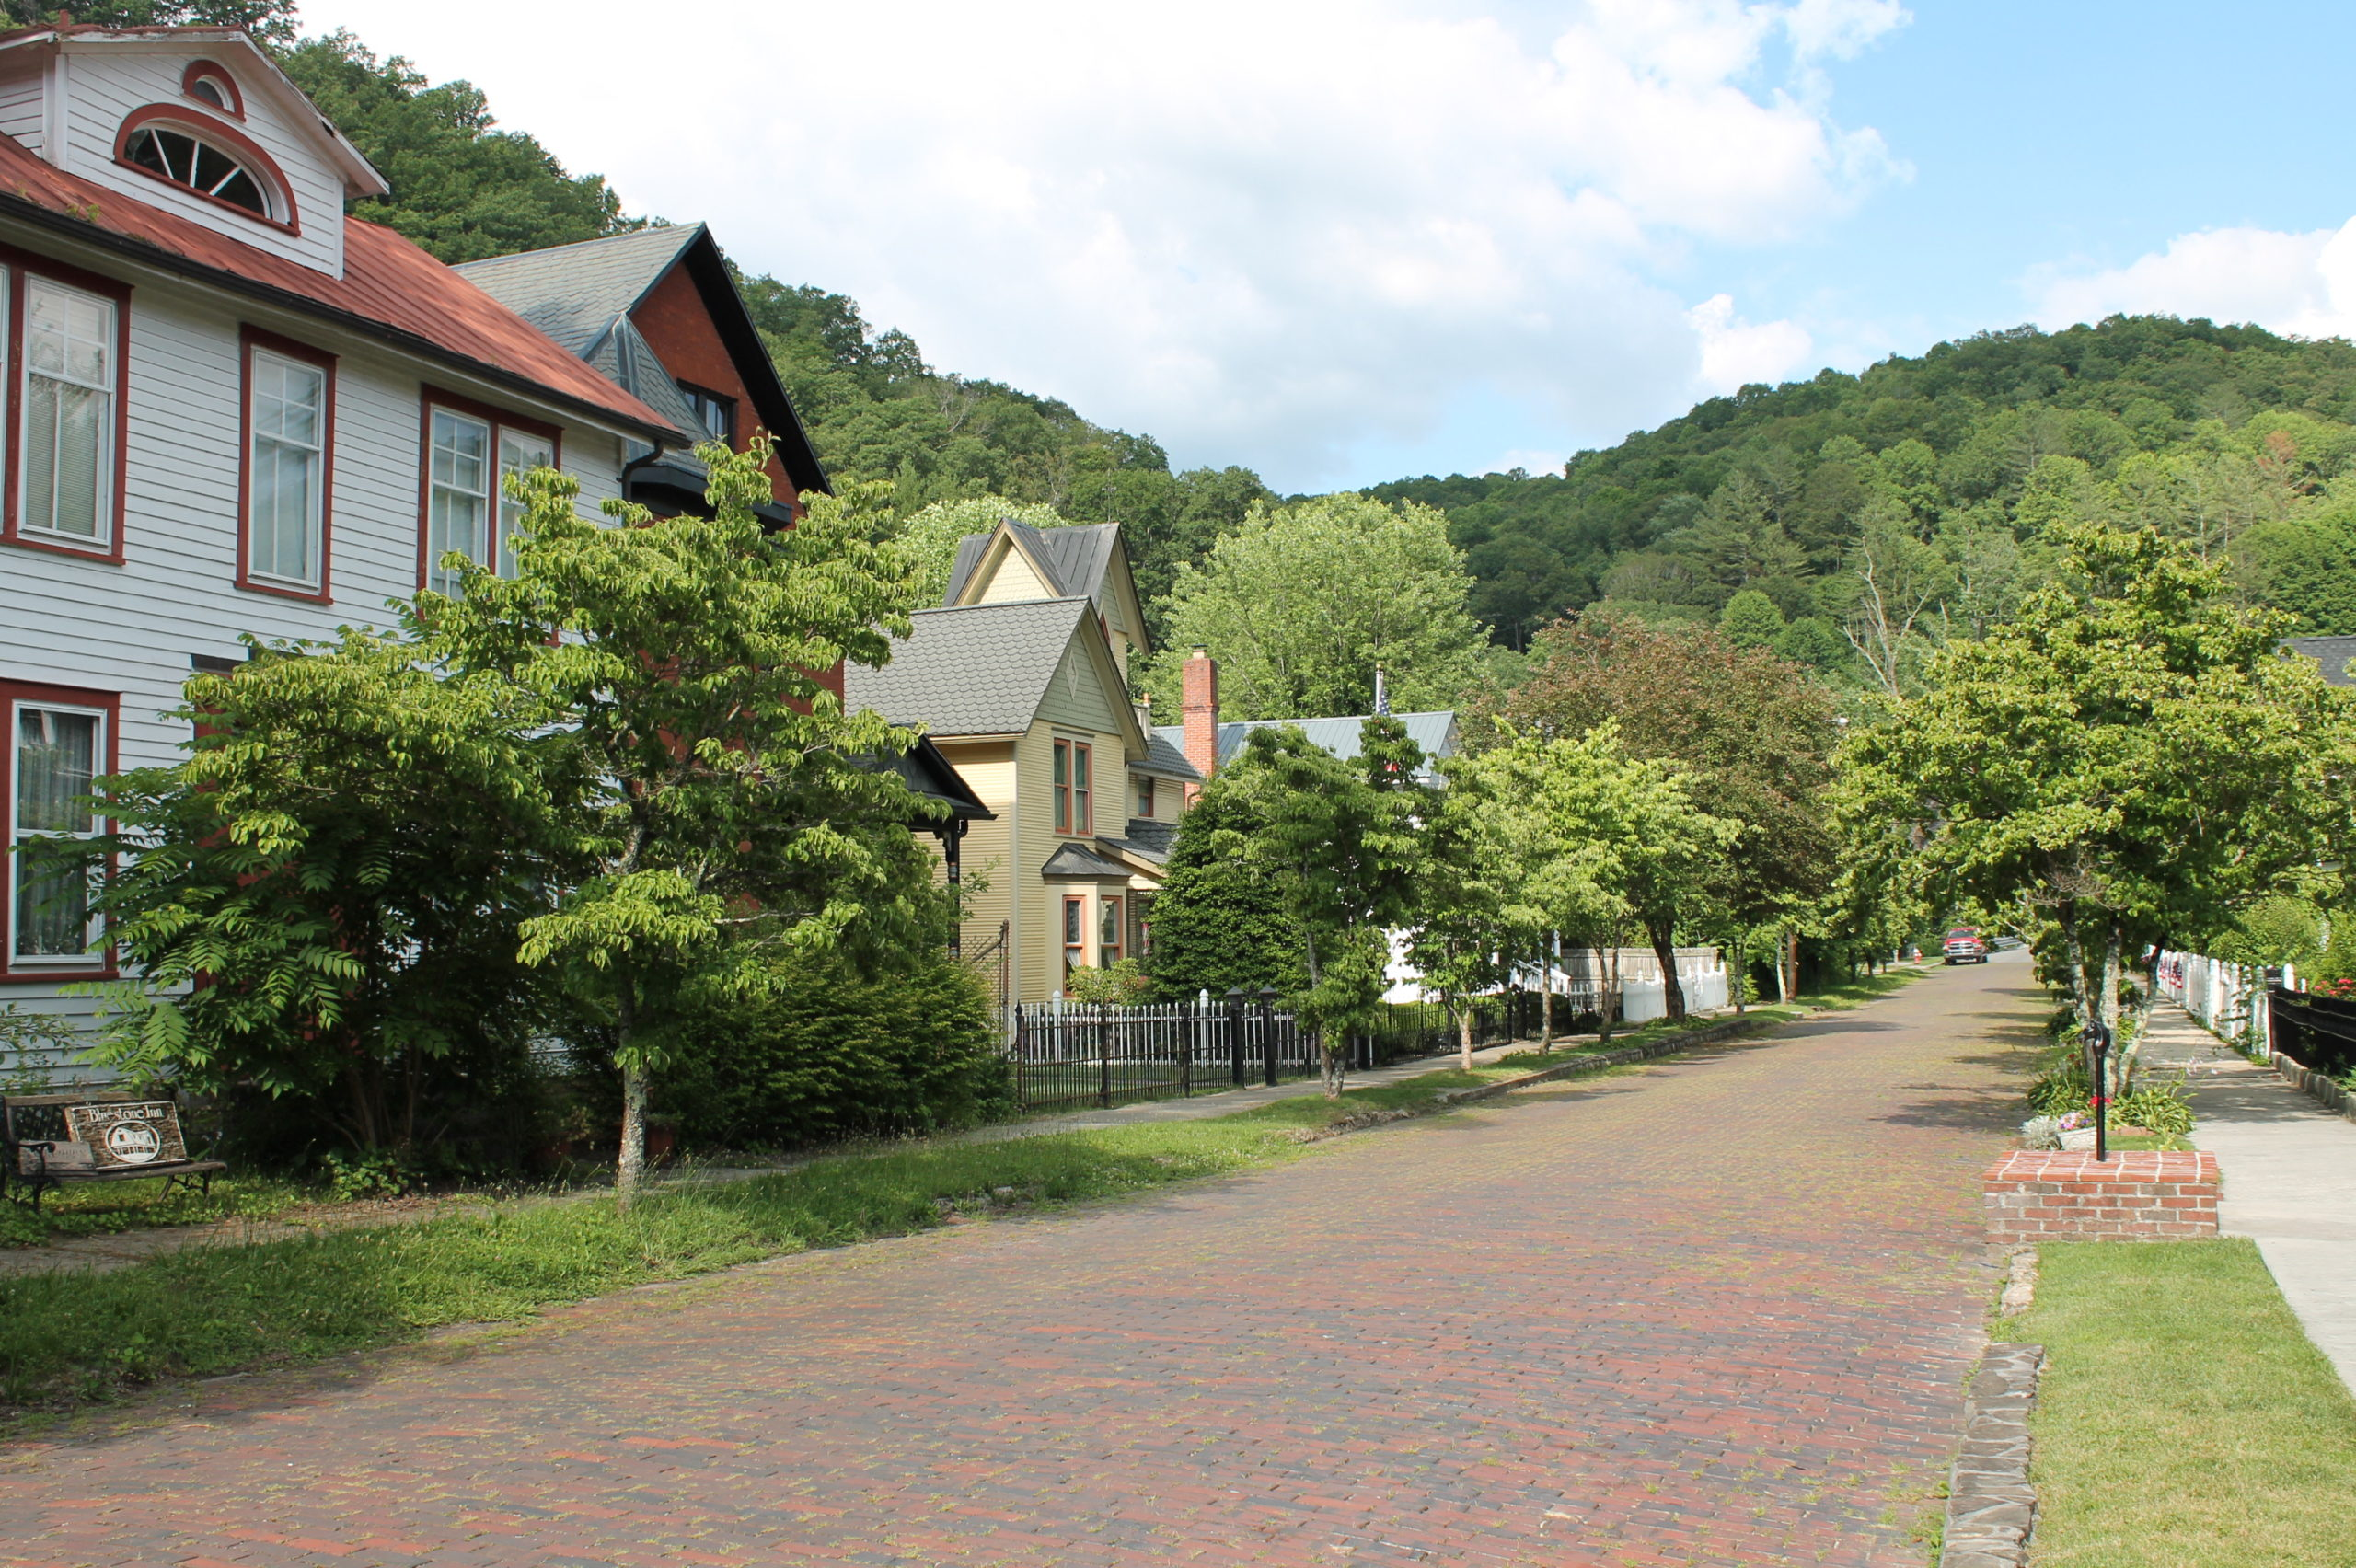 Plan A Trip To Bramwell, One Of West Virginia's Best Small Towns